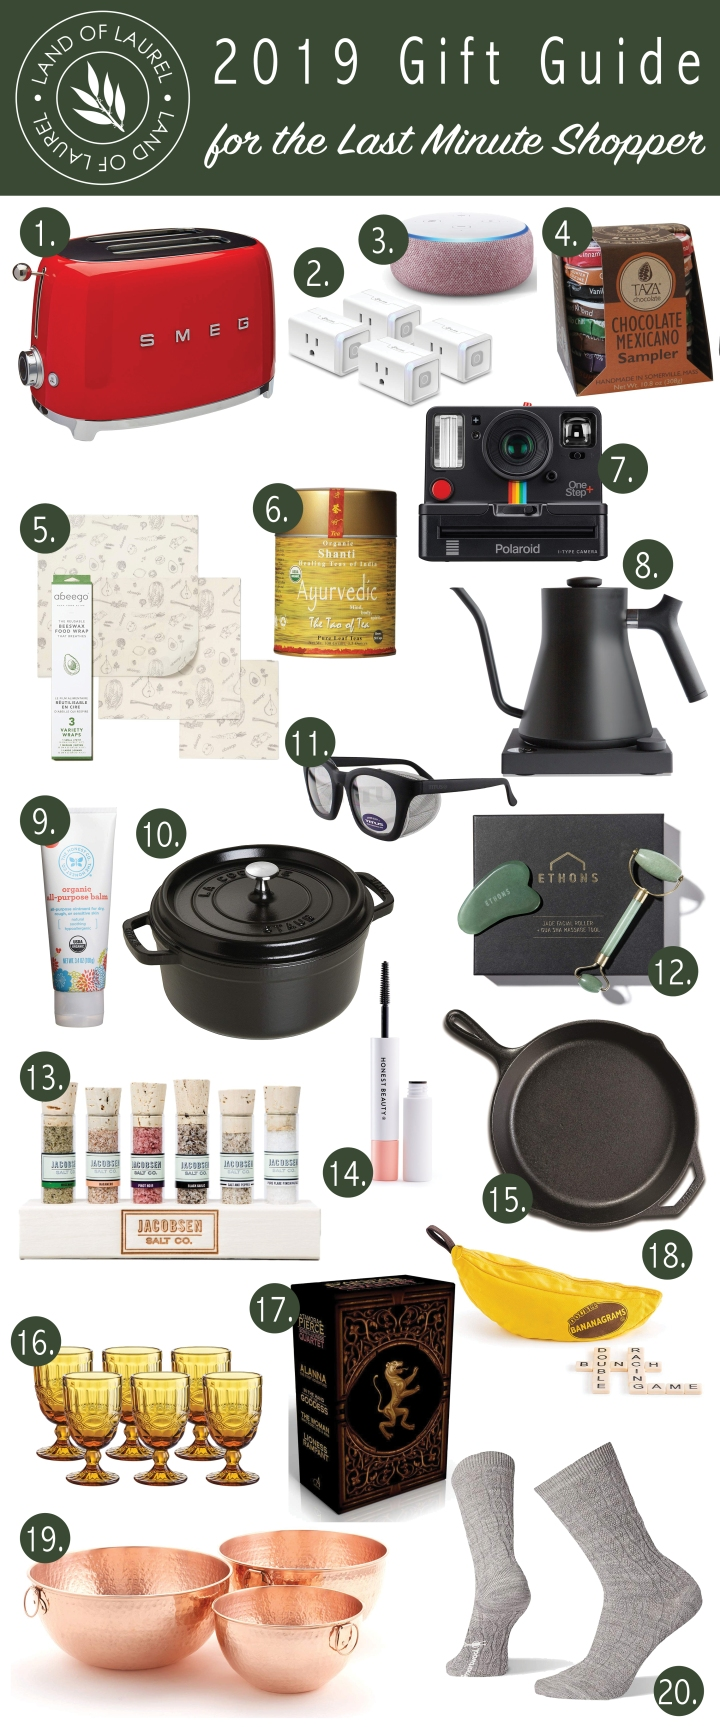 Gift Guide For the Last Minute Shopper